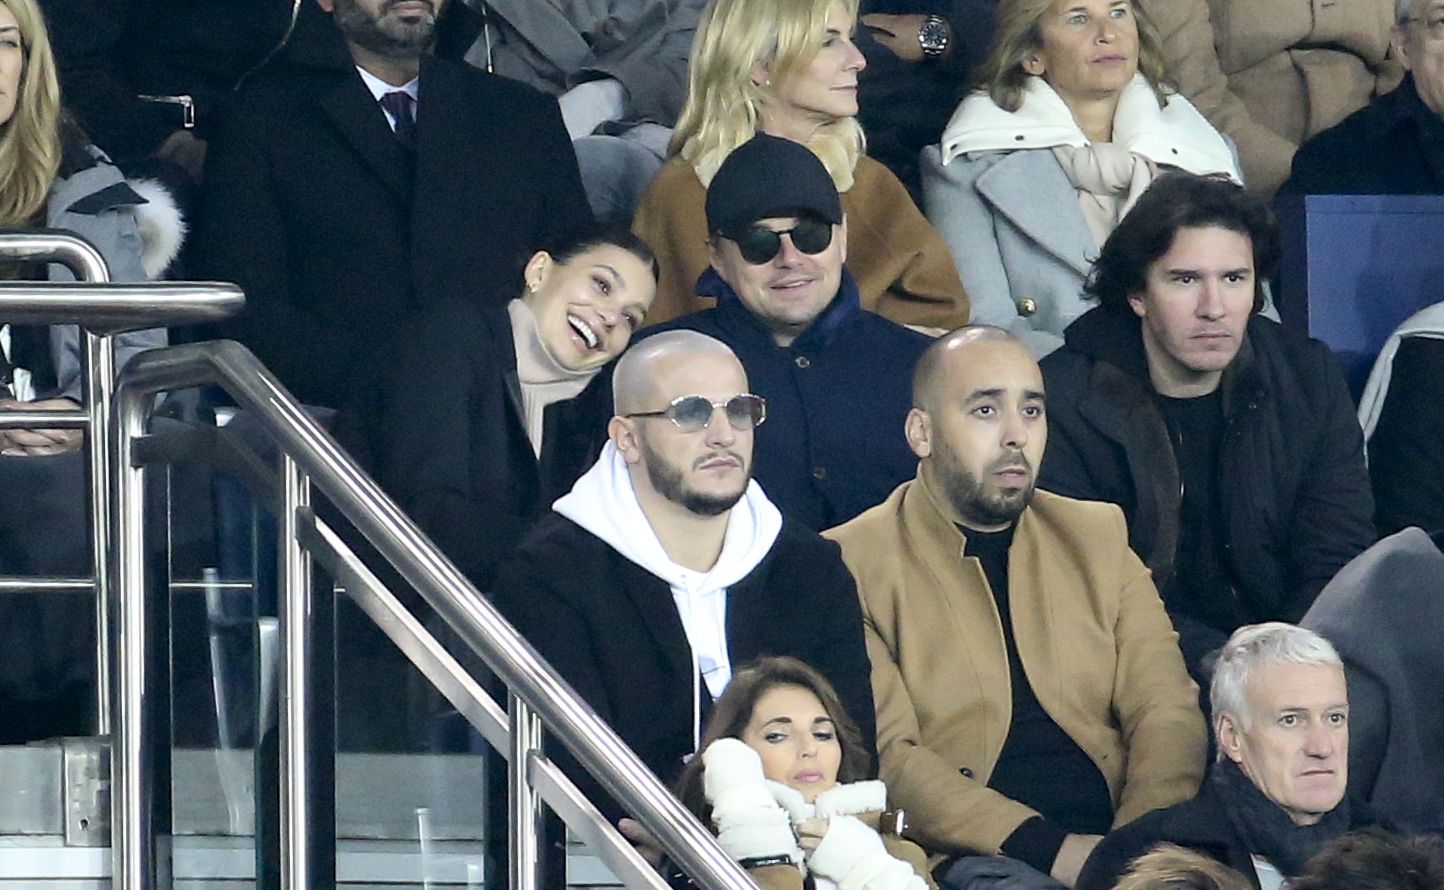 Leonardo DiCaprio and his girlfriend Camila Morrone, below DJ Snake attend the UEFA Champions League Group C match between Paris Saint-Germain (PSG) and Liverpool FC at Parc des Princes stadium on November 28, 2018 in Paris, France. (Photo by Jean Catuffe/Getty Images)